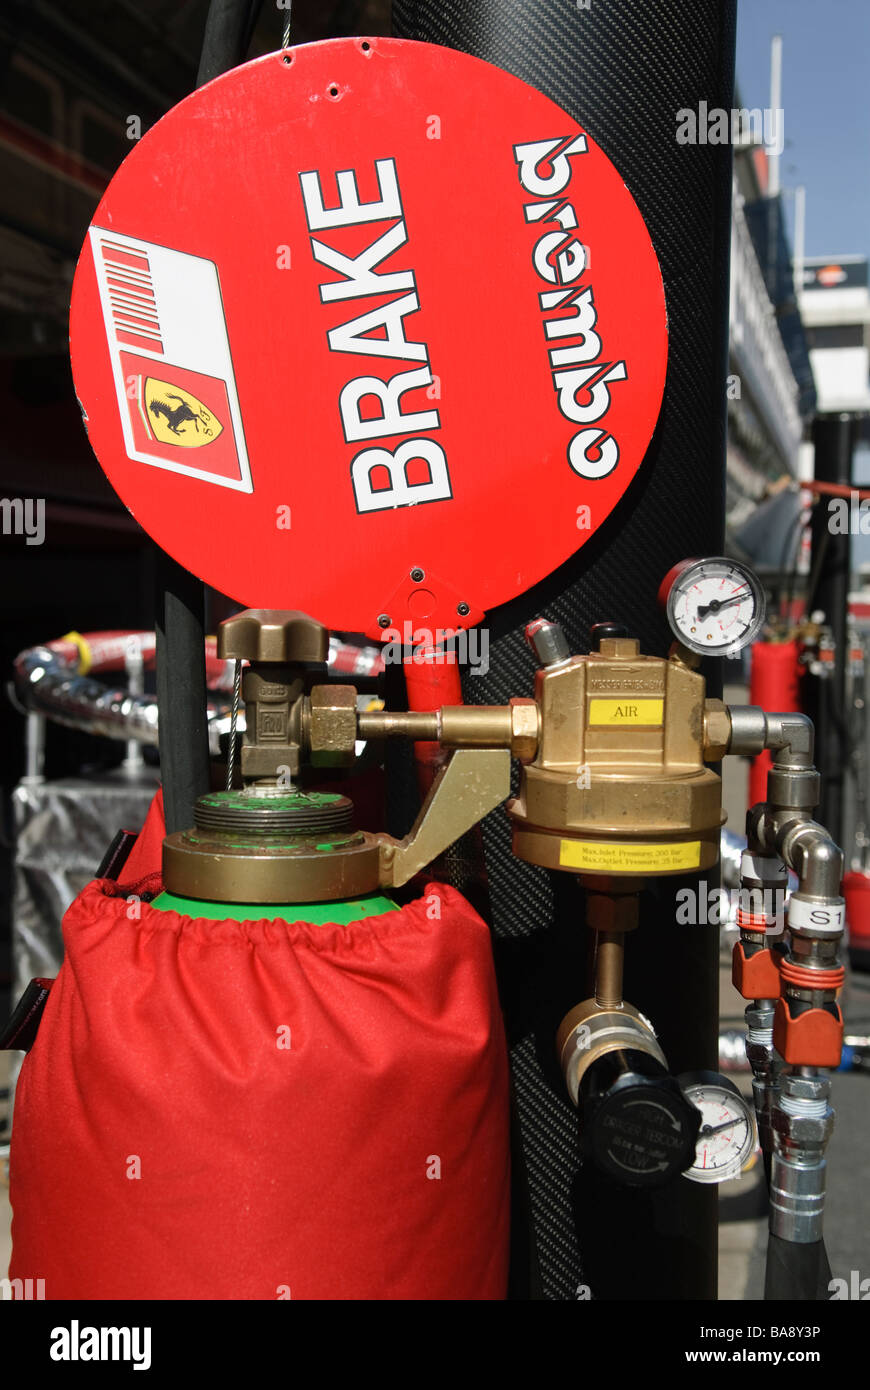 pressured gas bottle and lollypop in Ferrari Box at racetrack at Formula One testing sessions Stock Photo